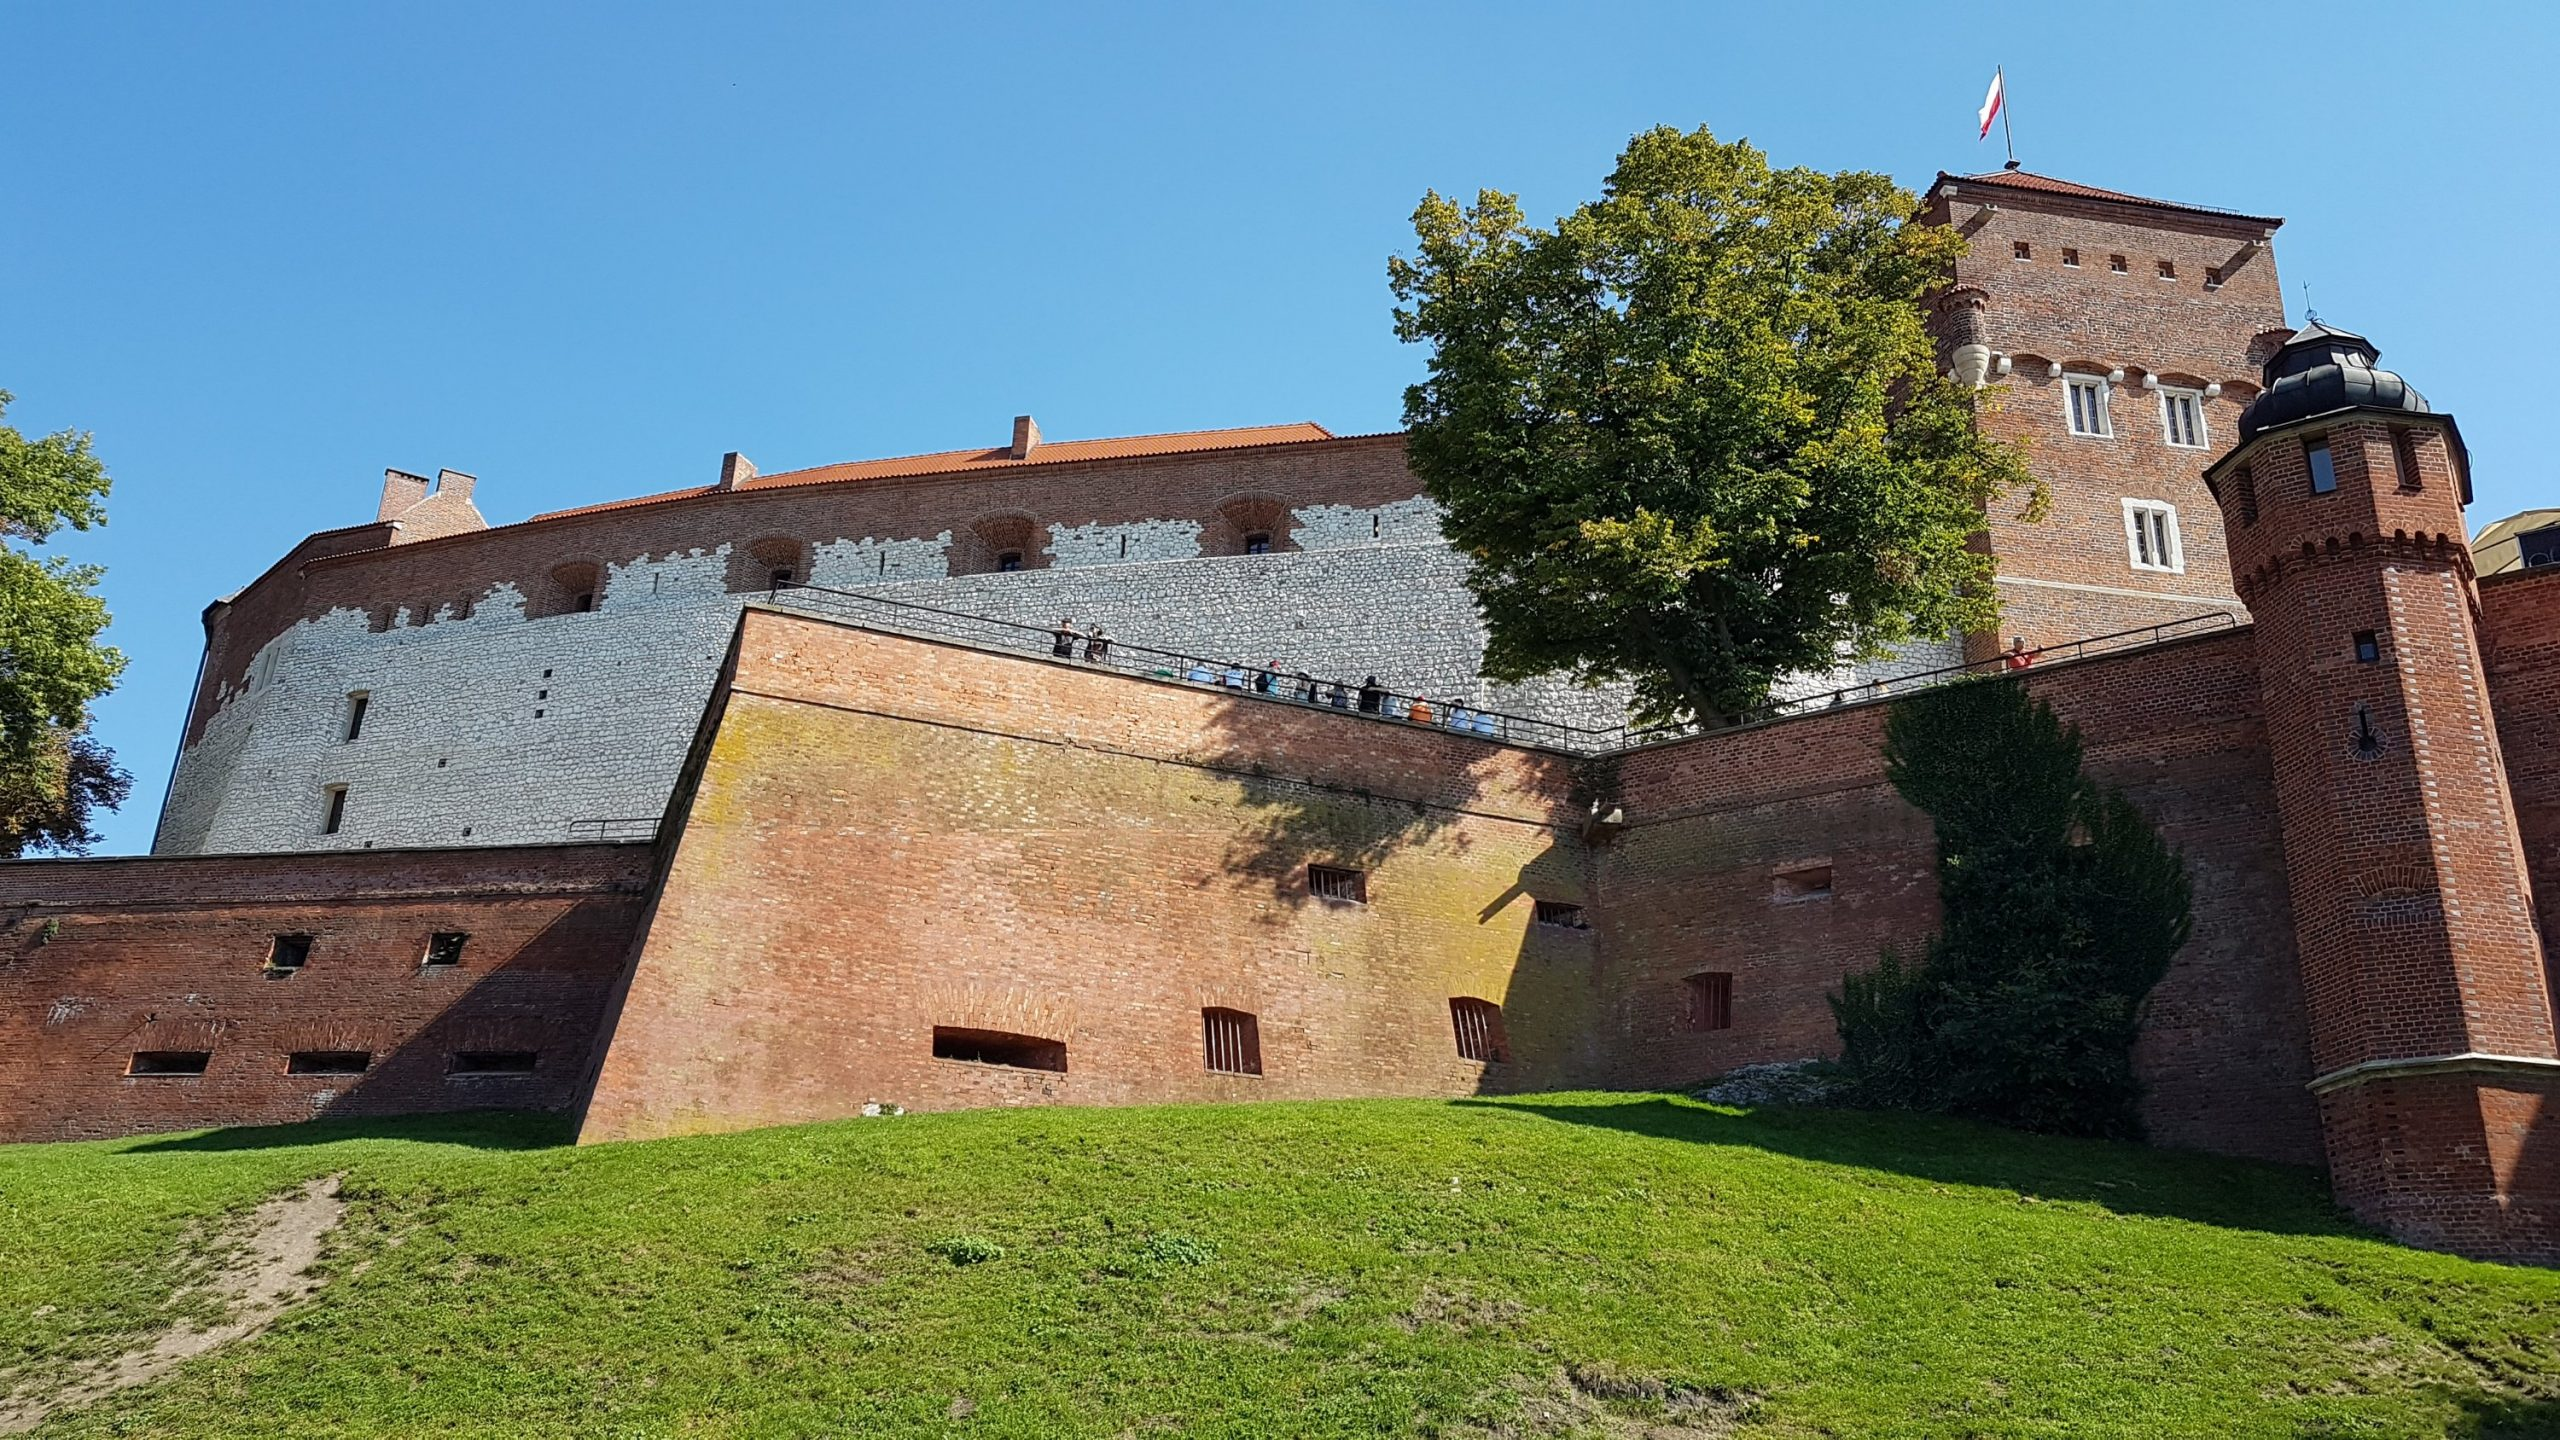 18 et 19 septembre : Cracovie